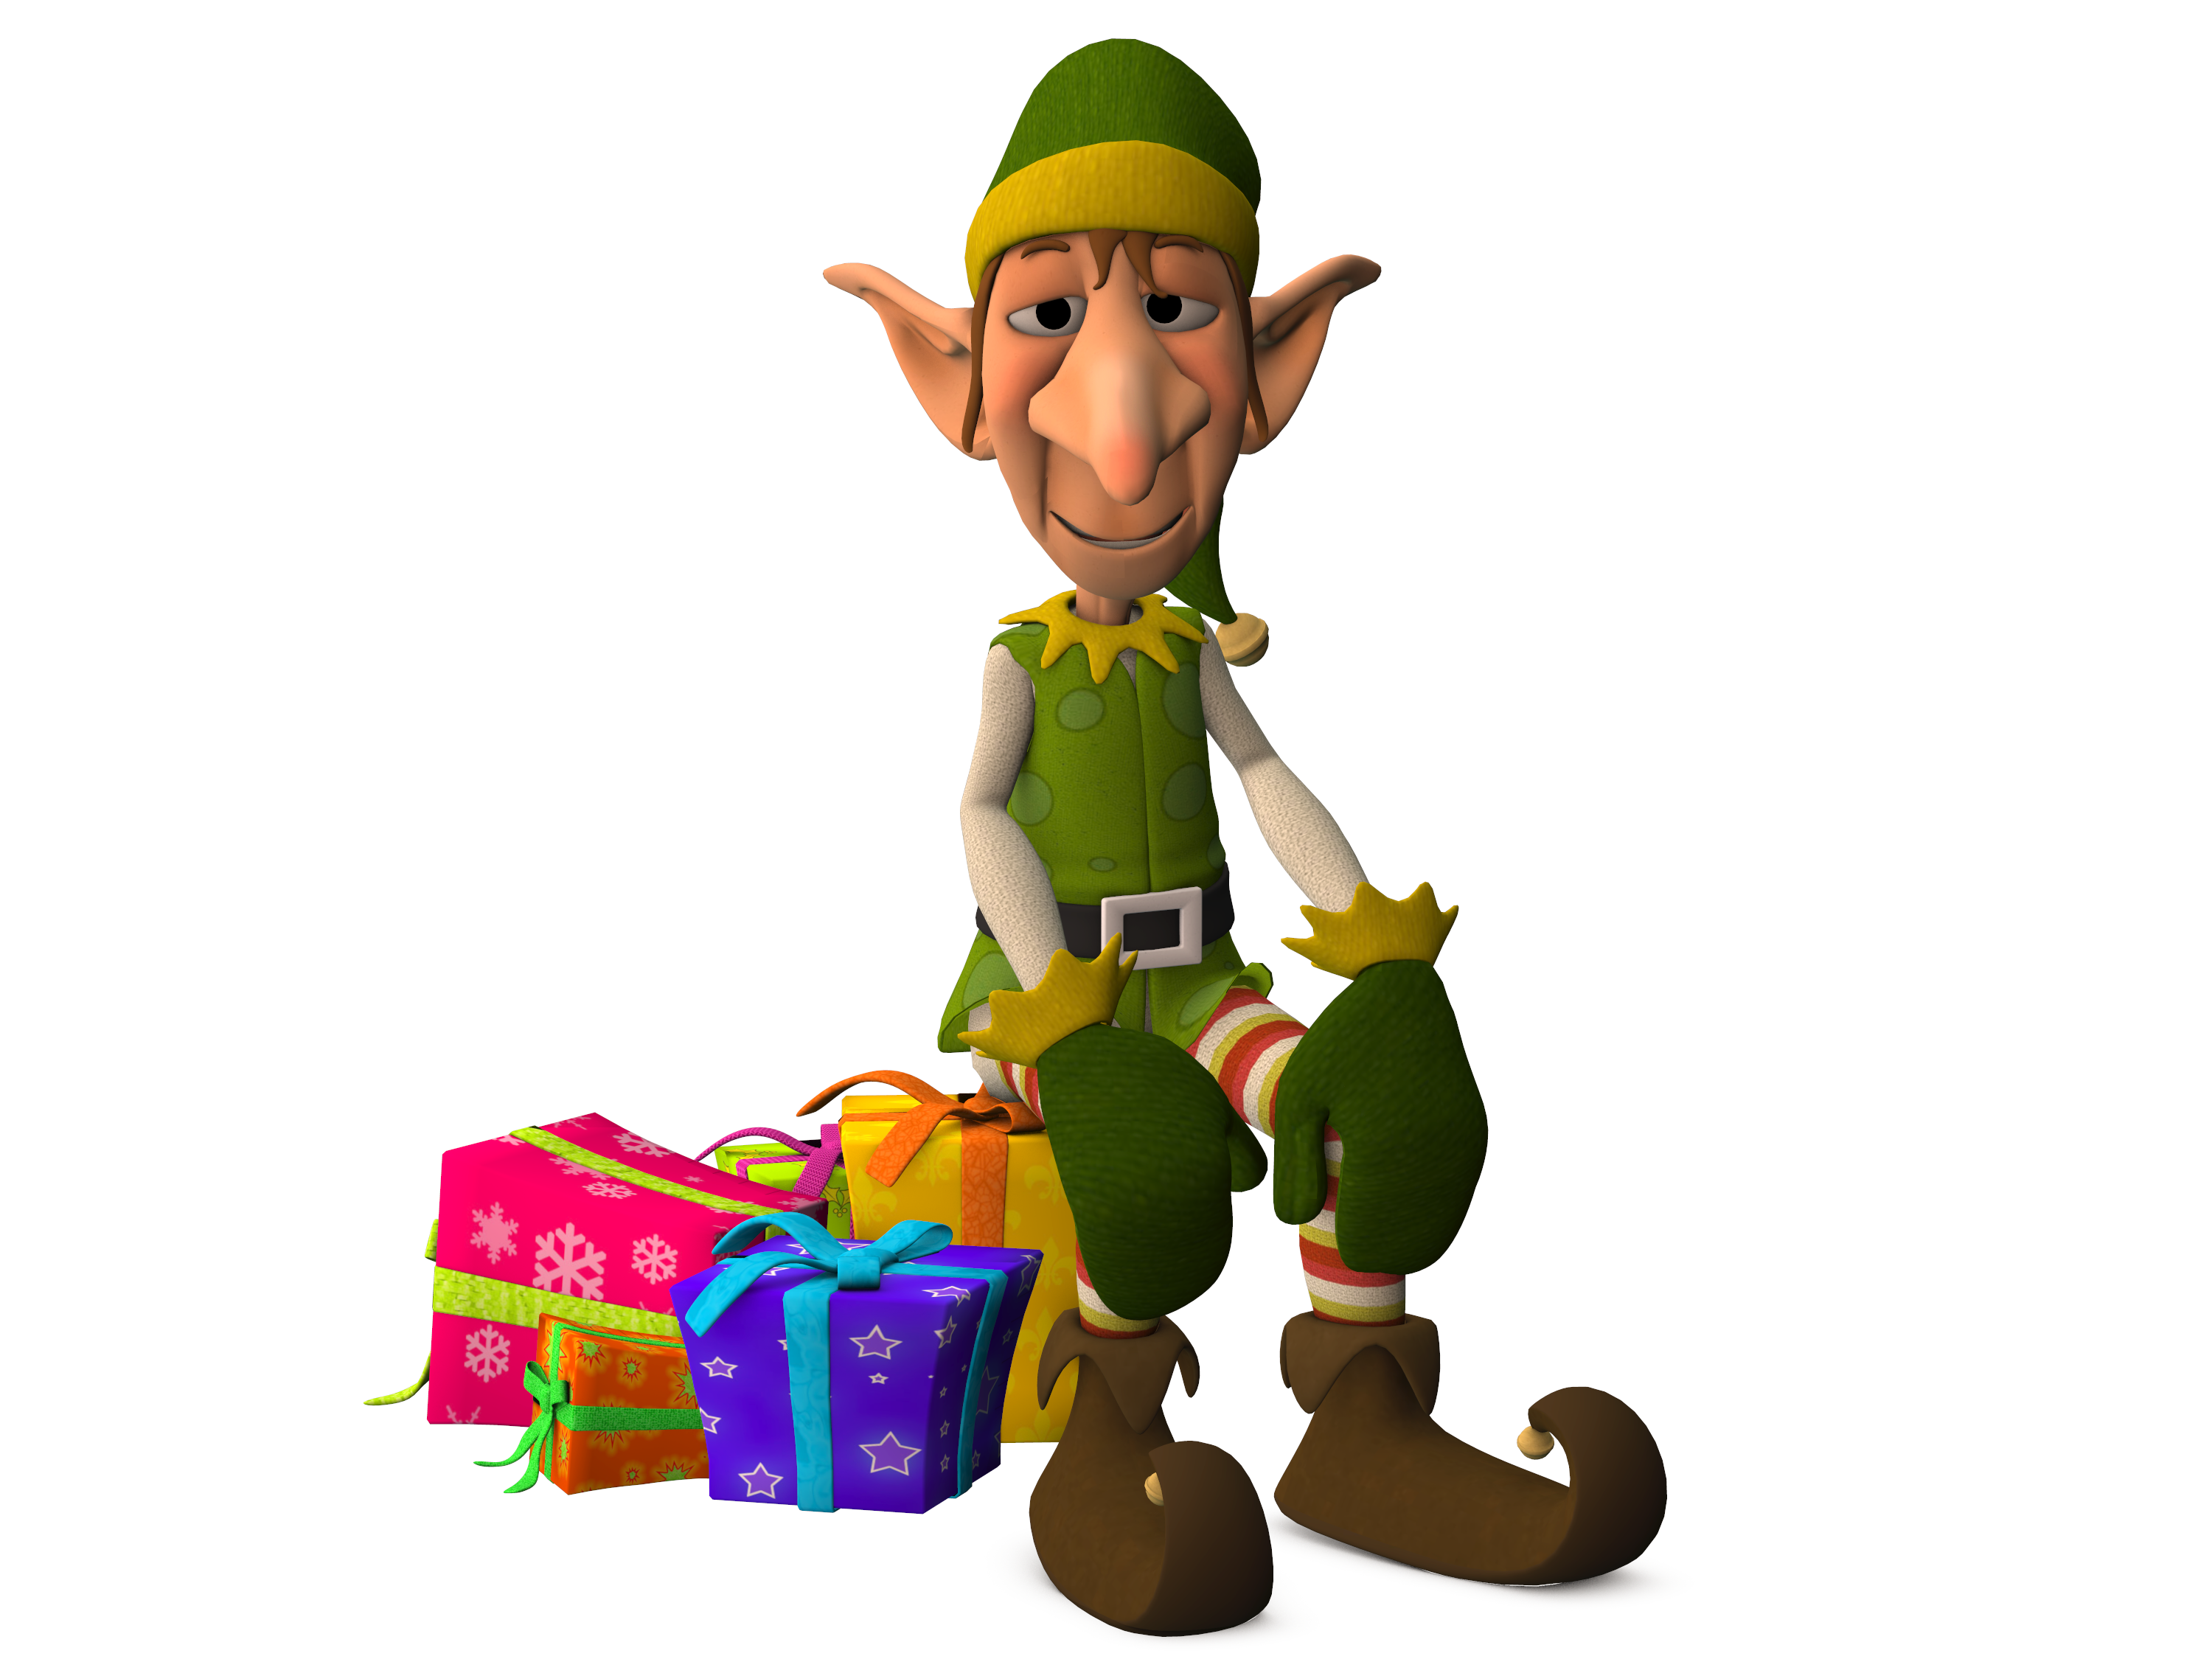 Christmas Elf Sitting on Presents 3d, Characters, Christmas Elf, Elf ...